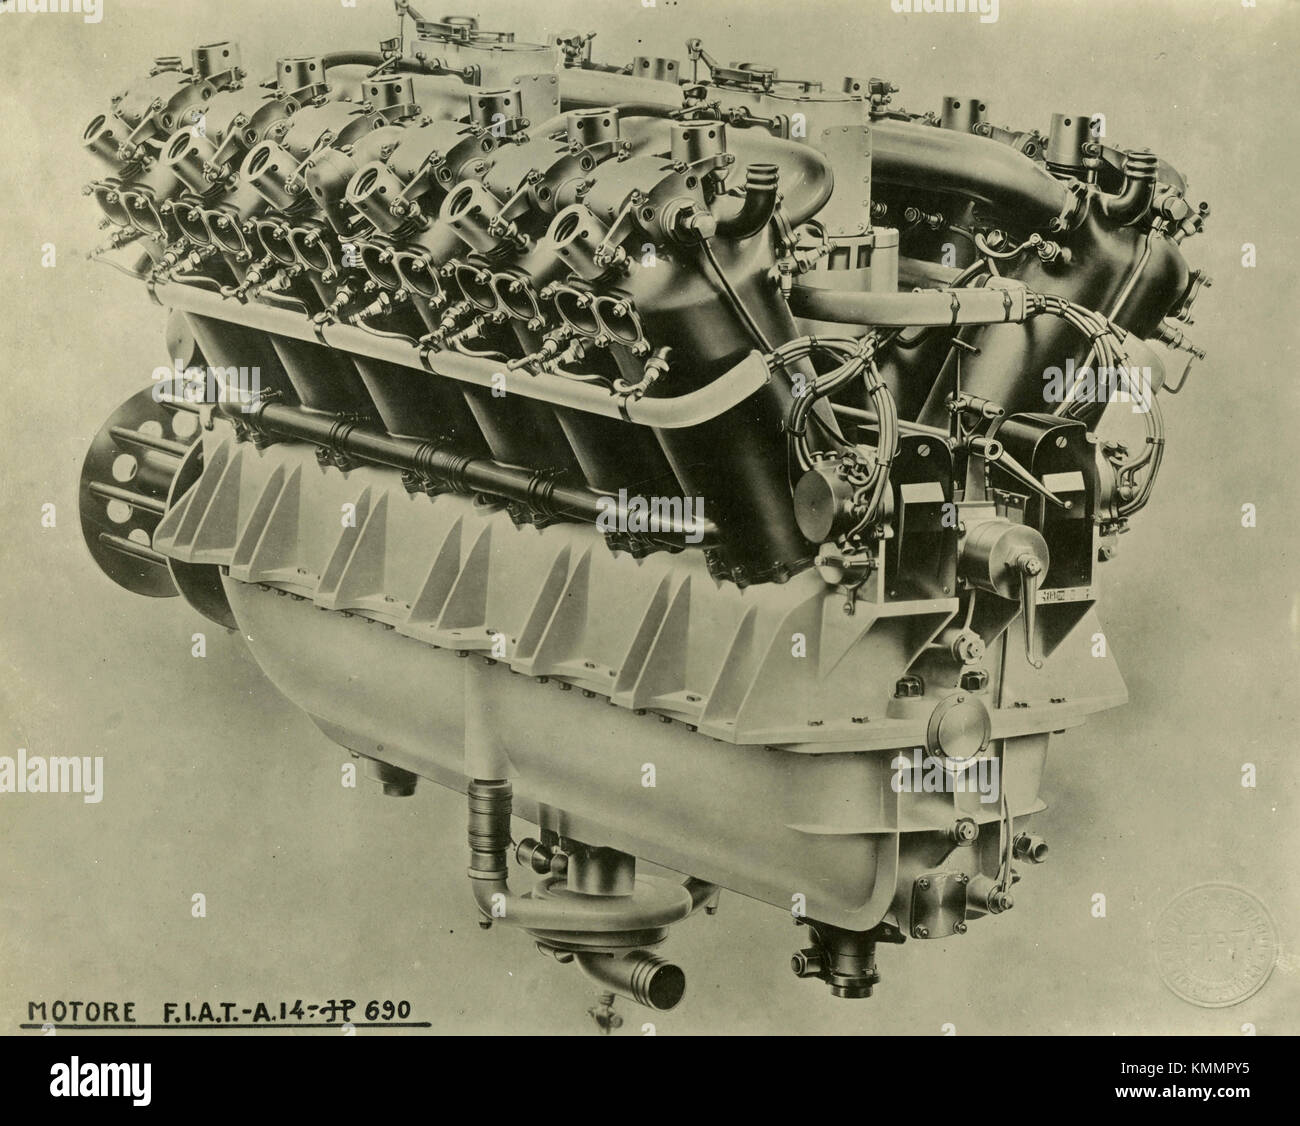 FIAT aviation engine A.14 HP 690, Italy 1920s - Stock Image